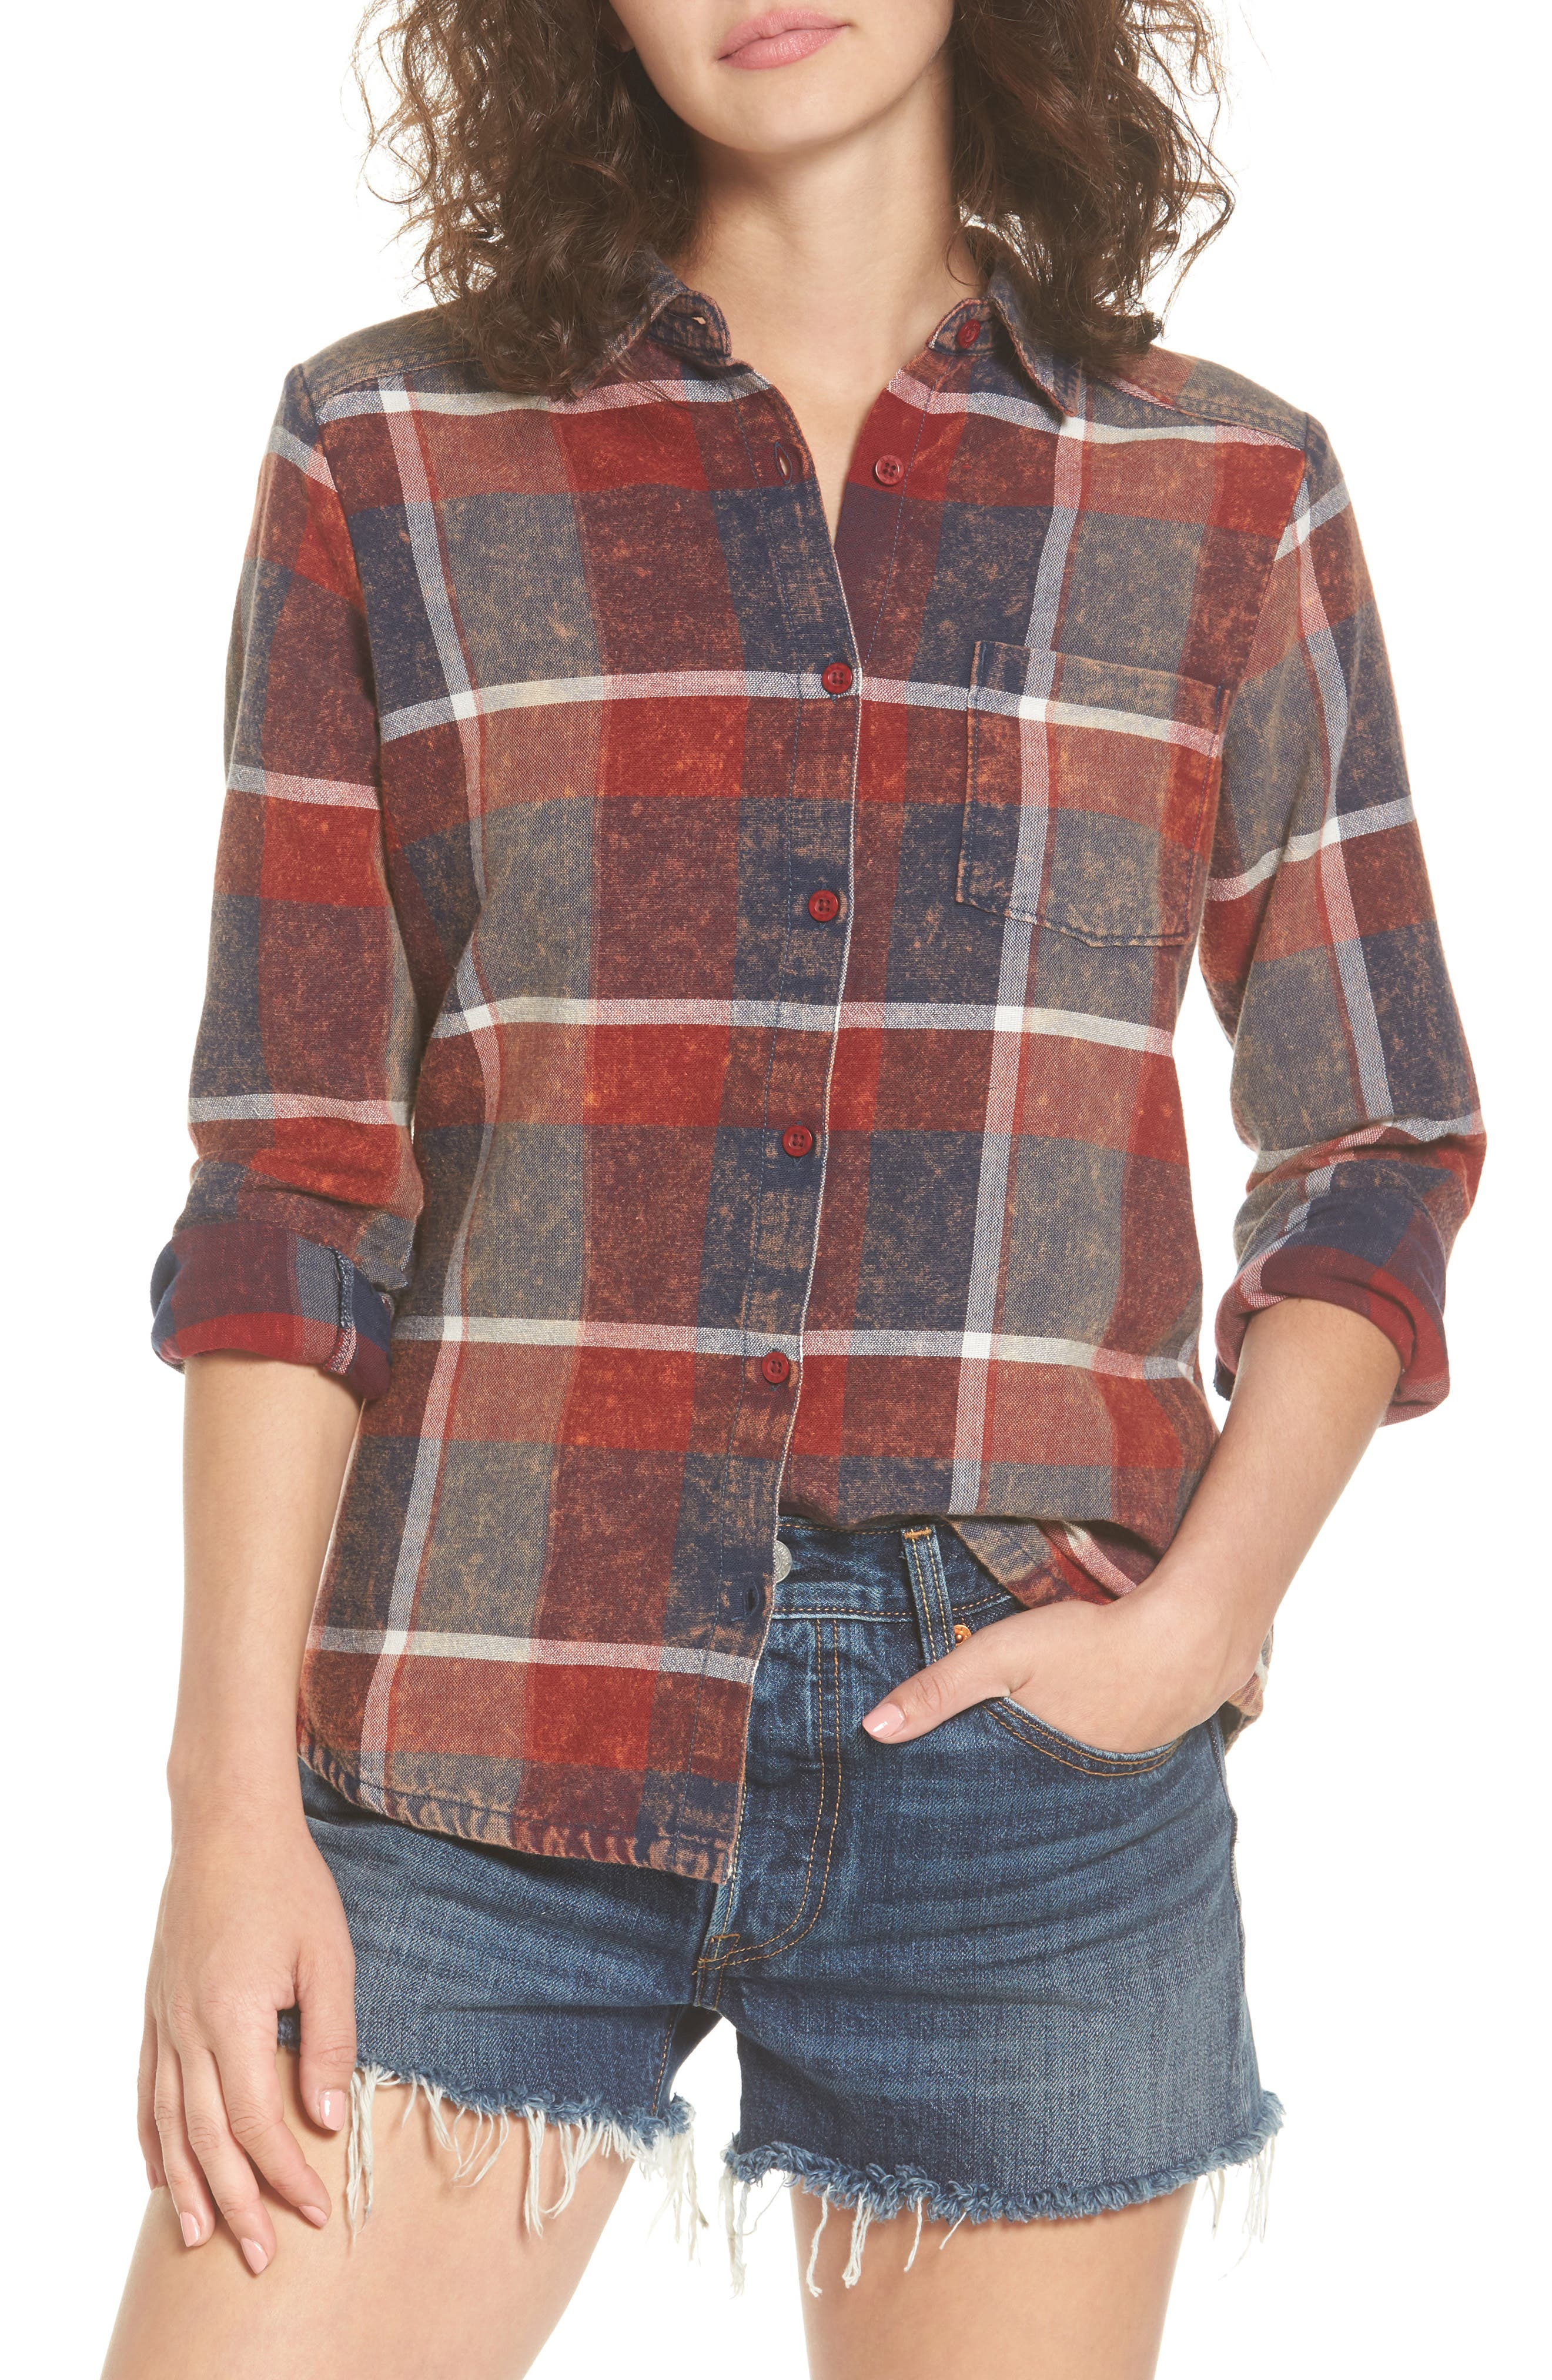 Alternate Image 1 Selected - RVCA Pops Cotton Plaid Shirt